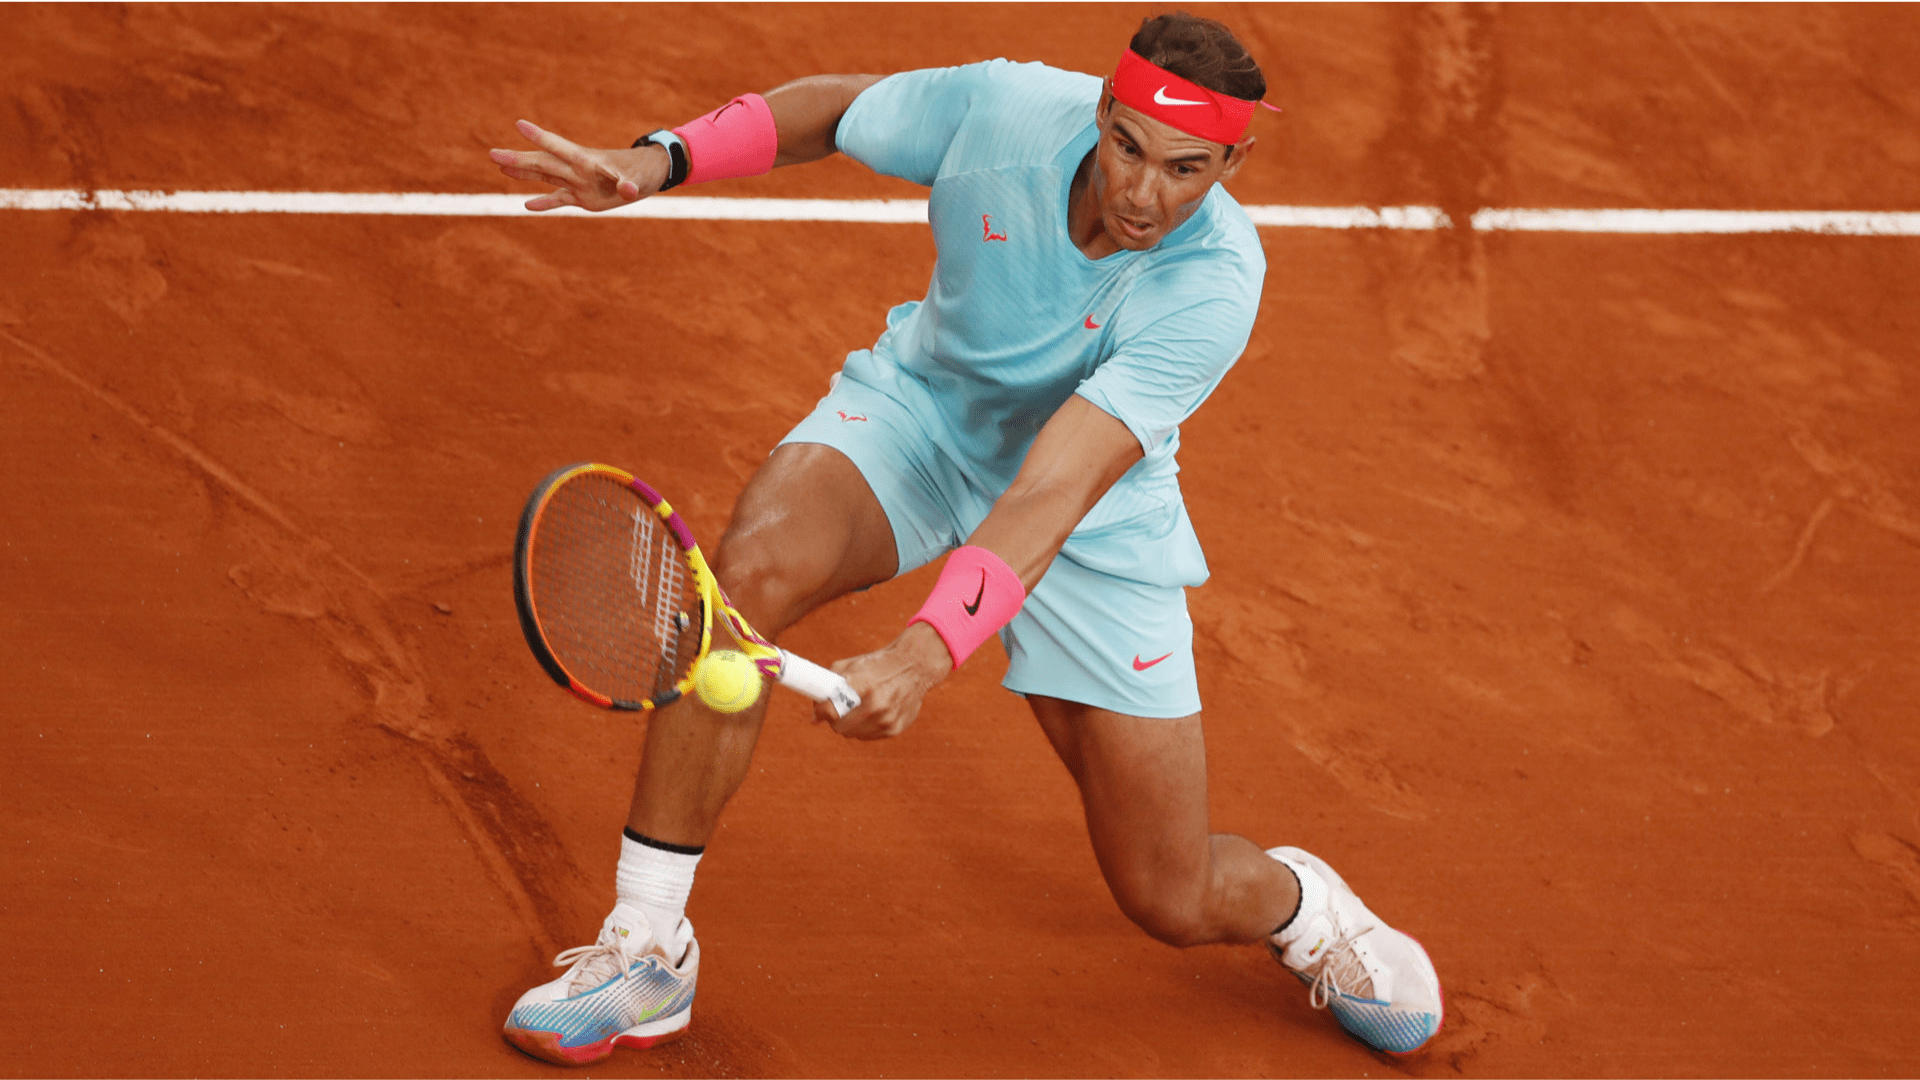 Rafael Nadal Winning Yet Another French Open